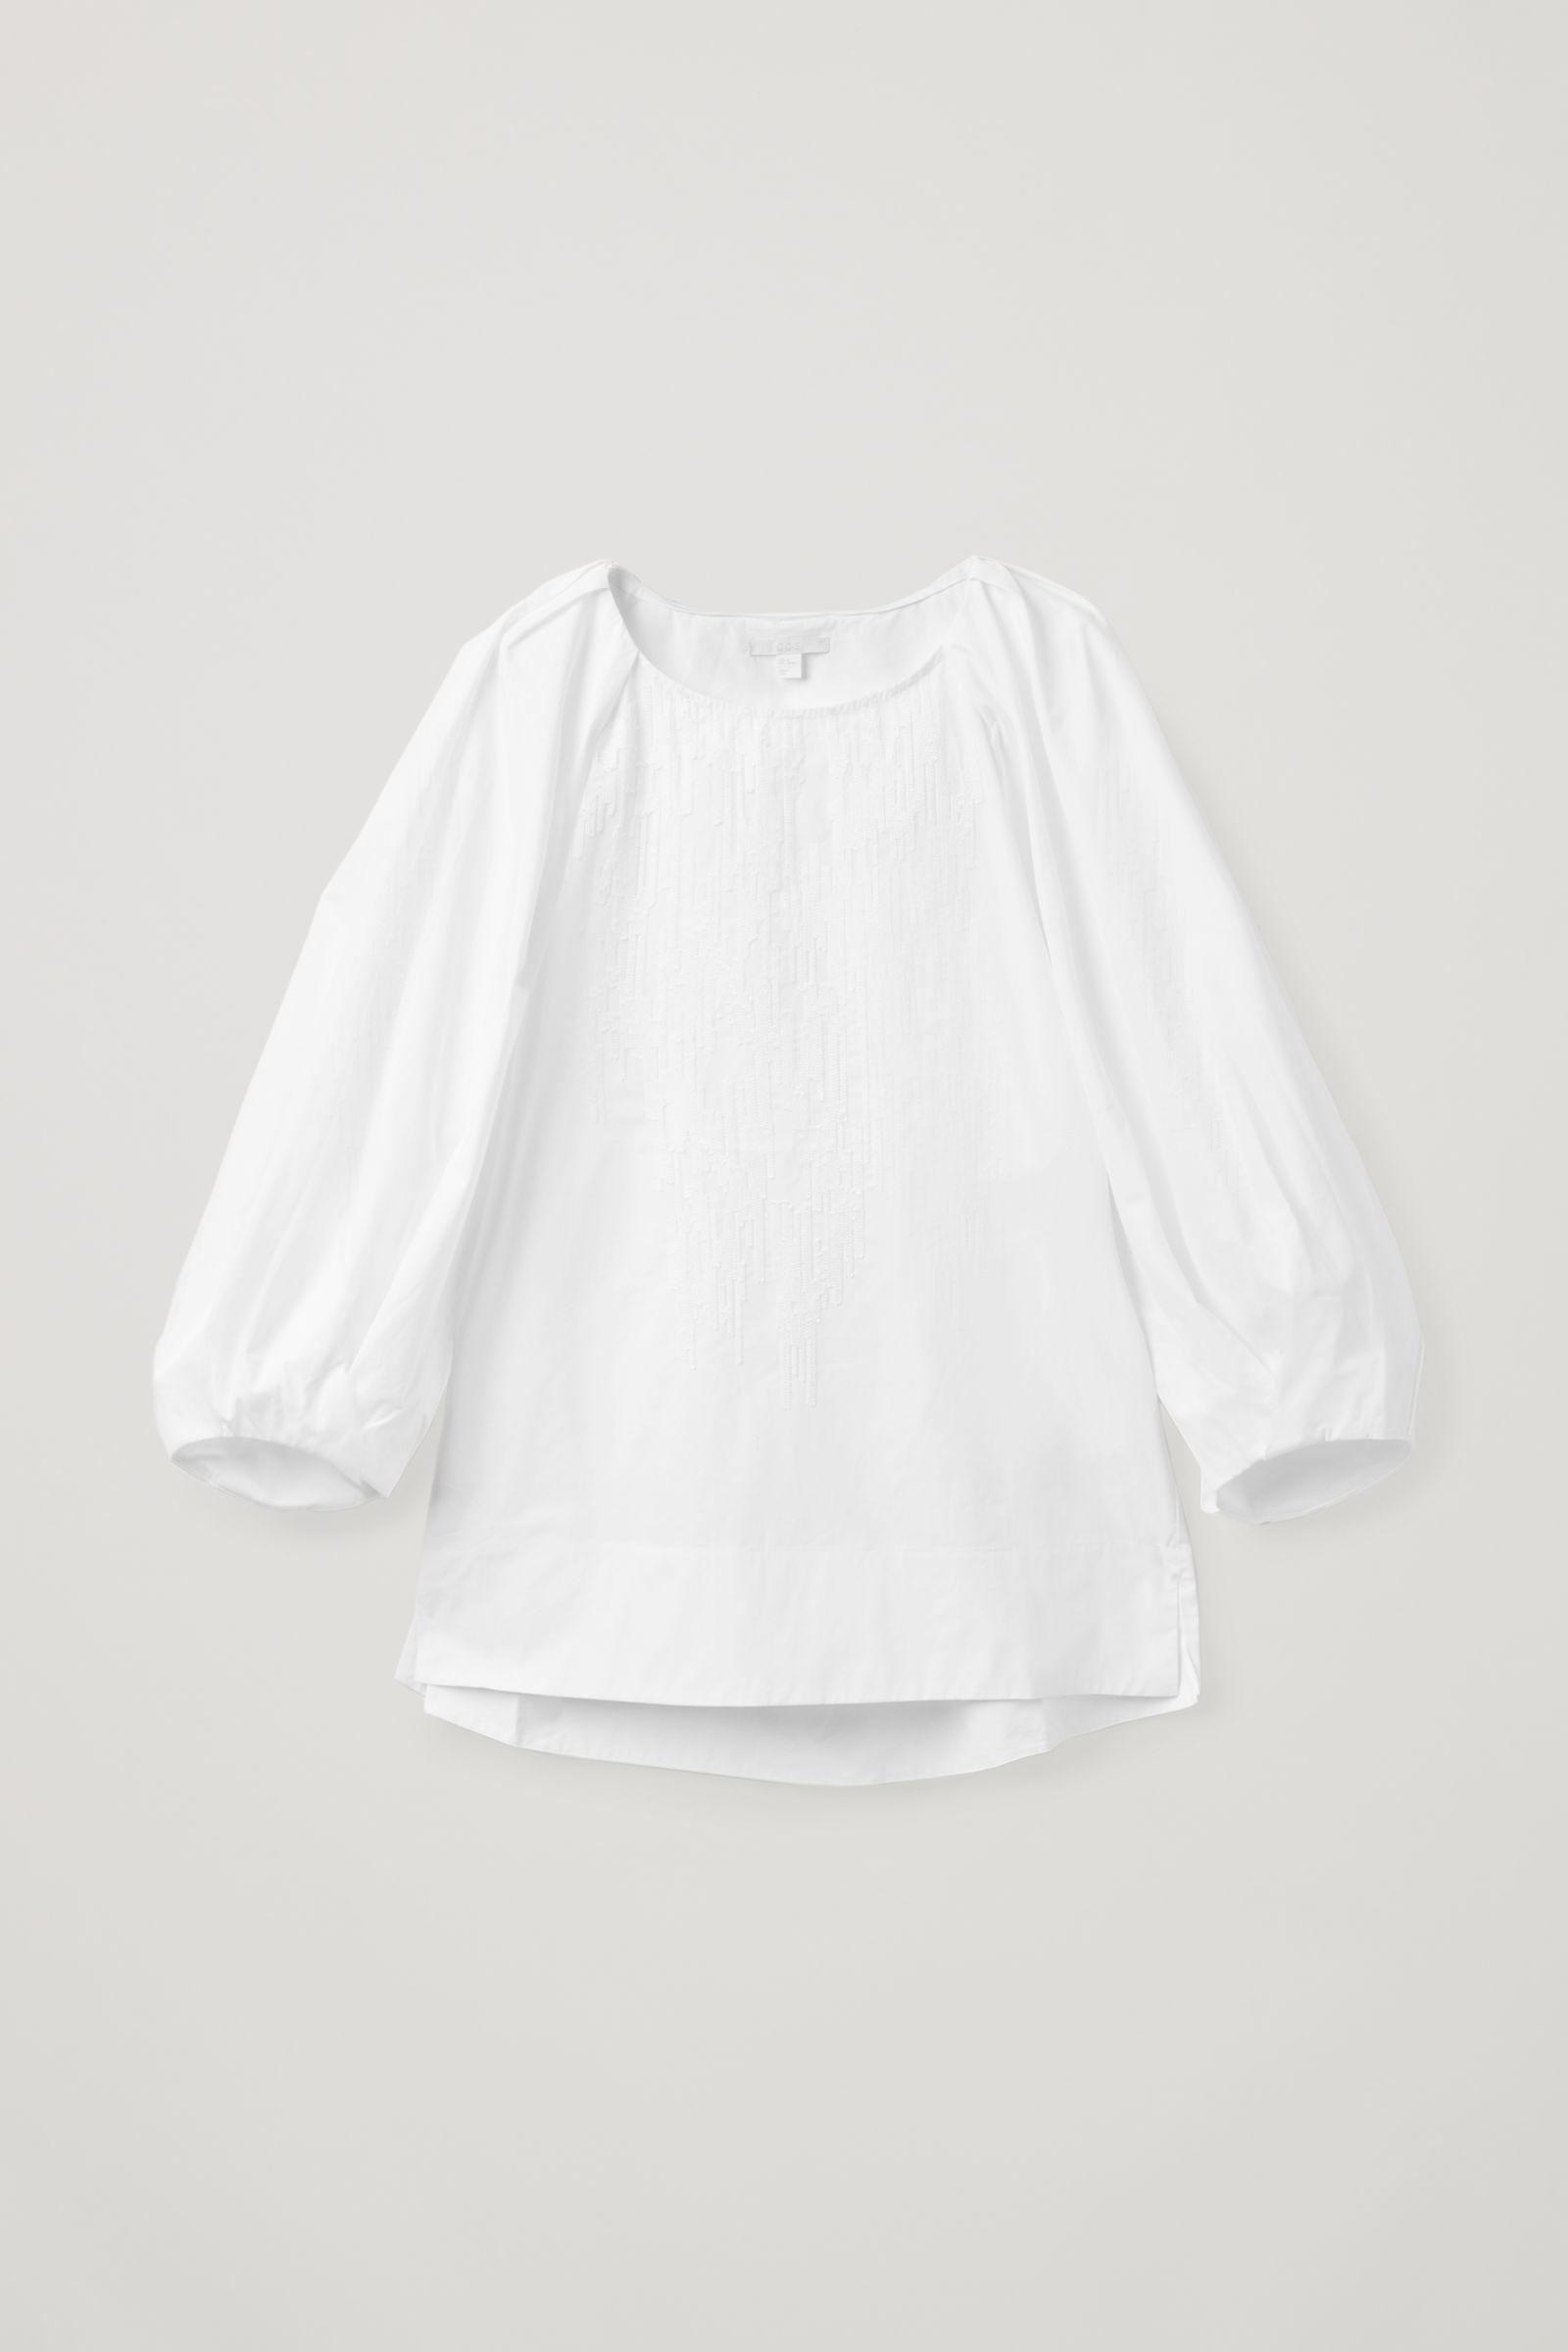 EMBROIDERED BLOUSE 5